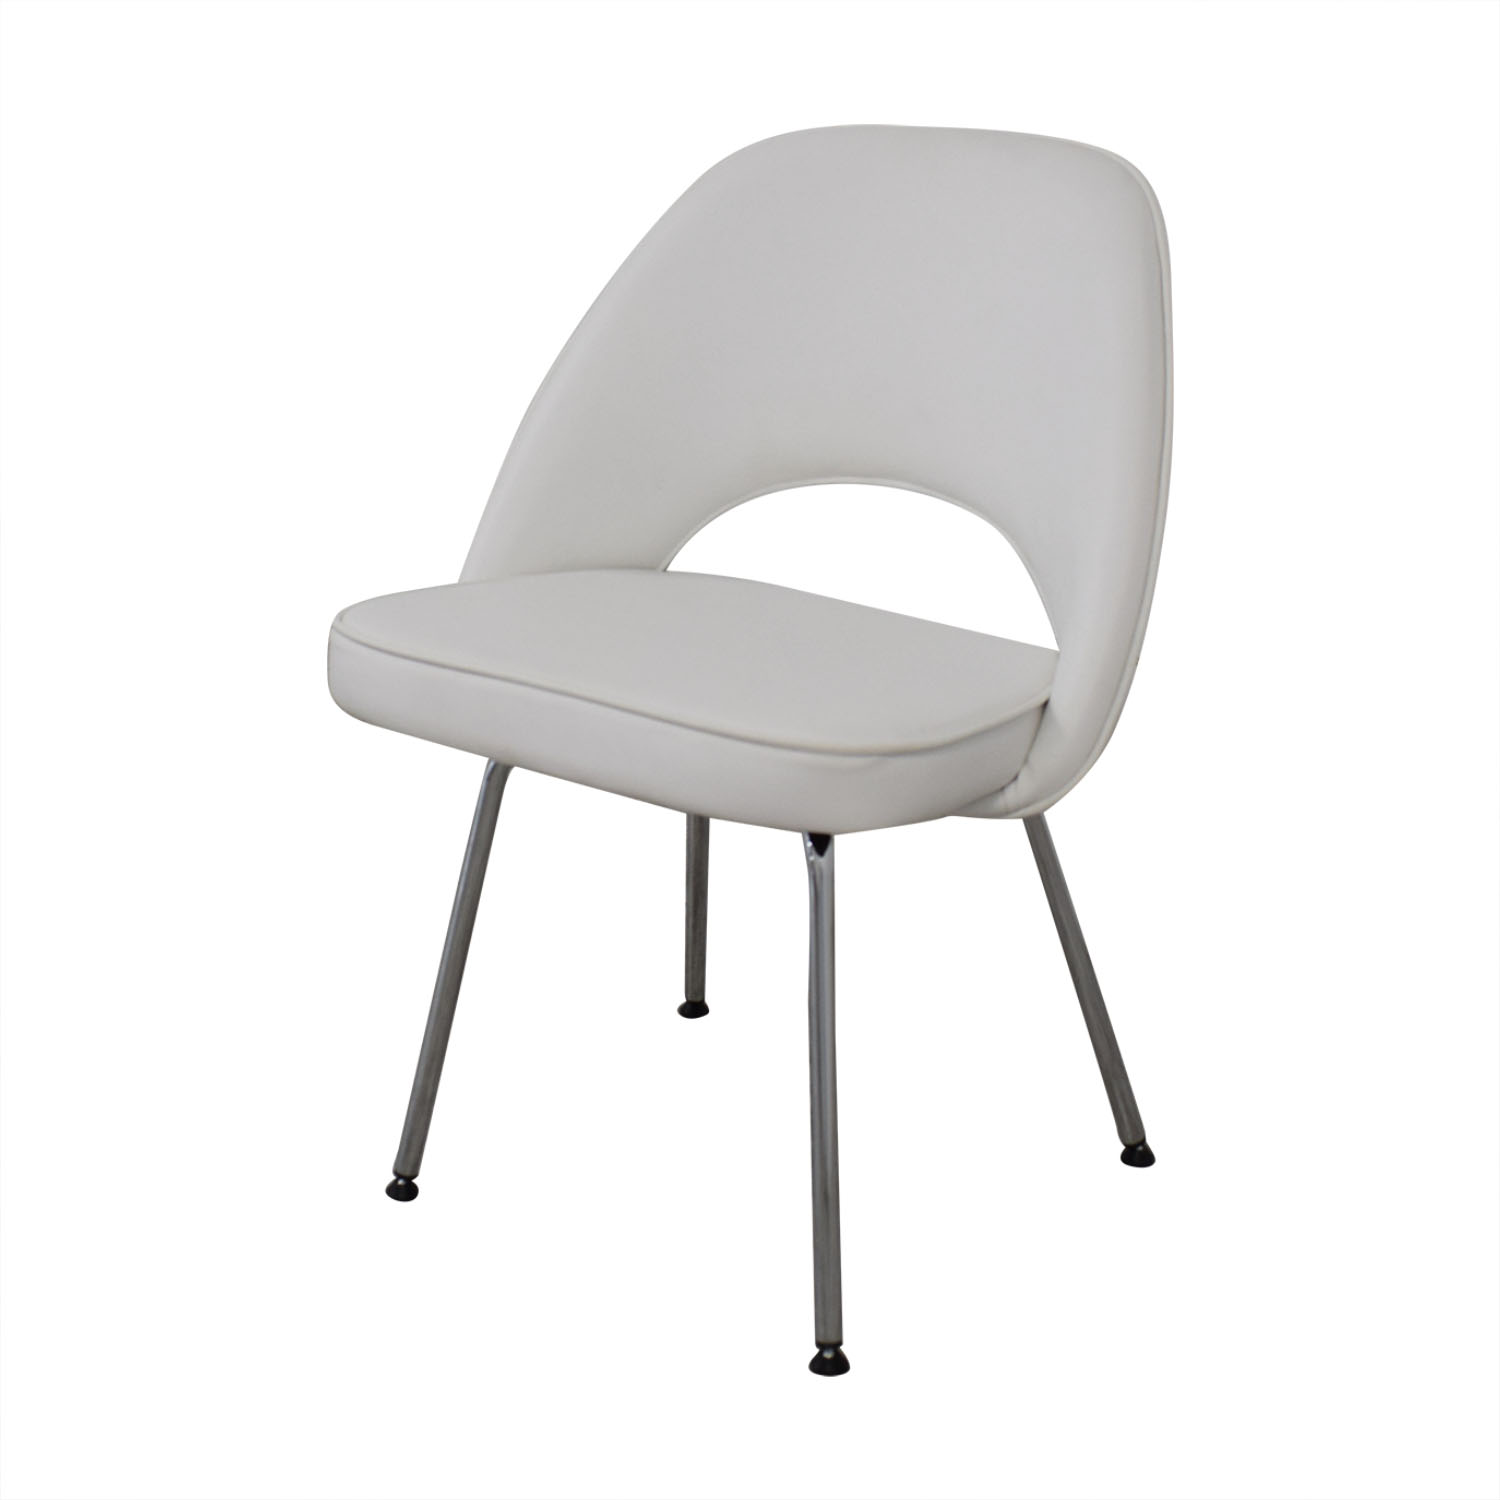 Control Brand Leather Dining Chairs / Dining Chairs